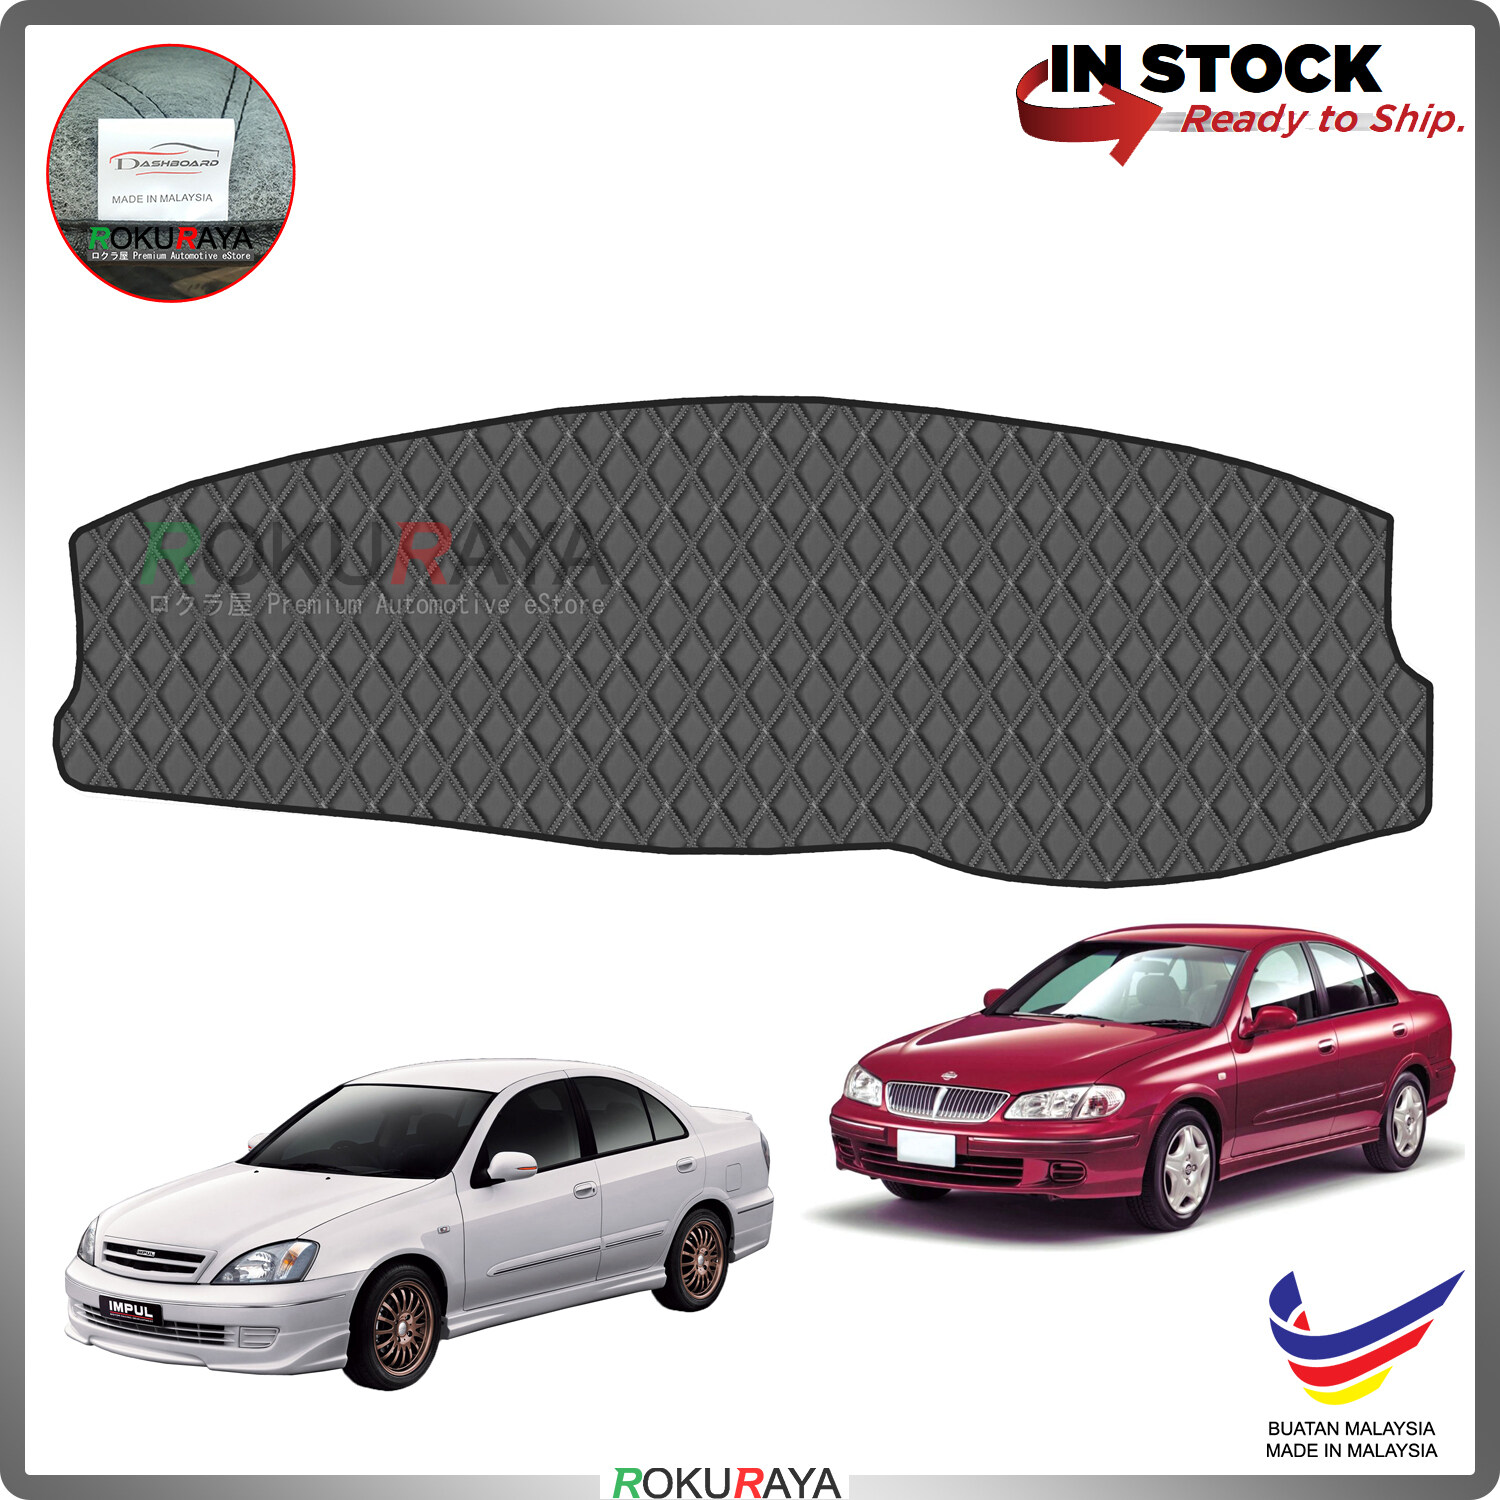 Nissan Sentra N16 G10 2000 Rr Malaysia Custom Fit Dashboard Cover Red Line Lazada